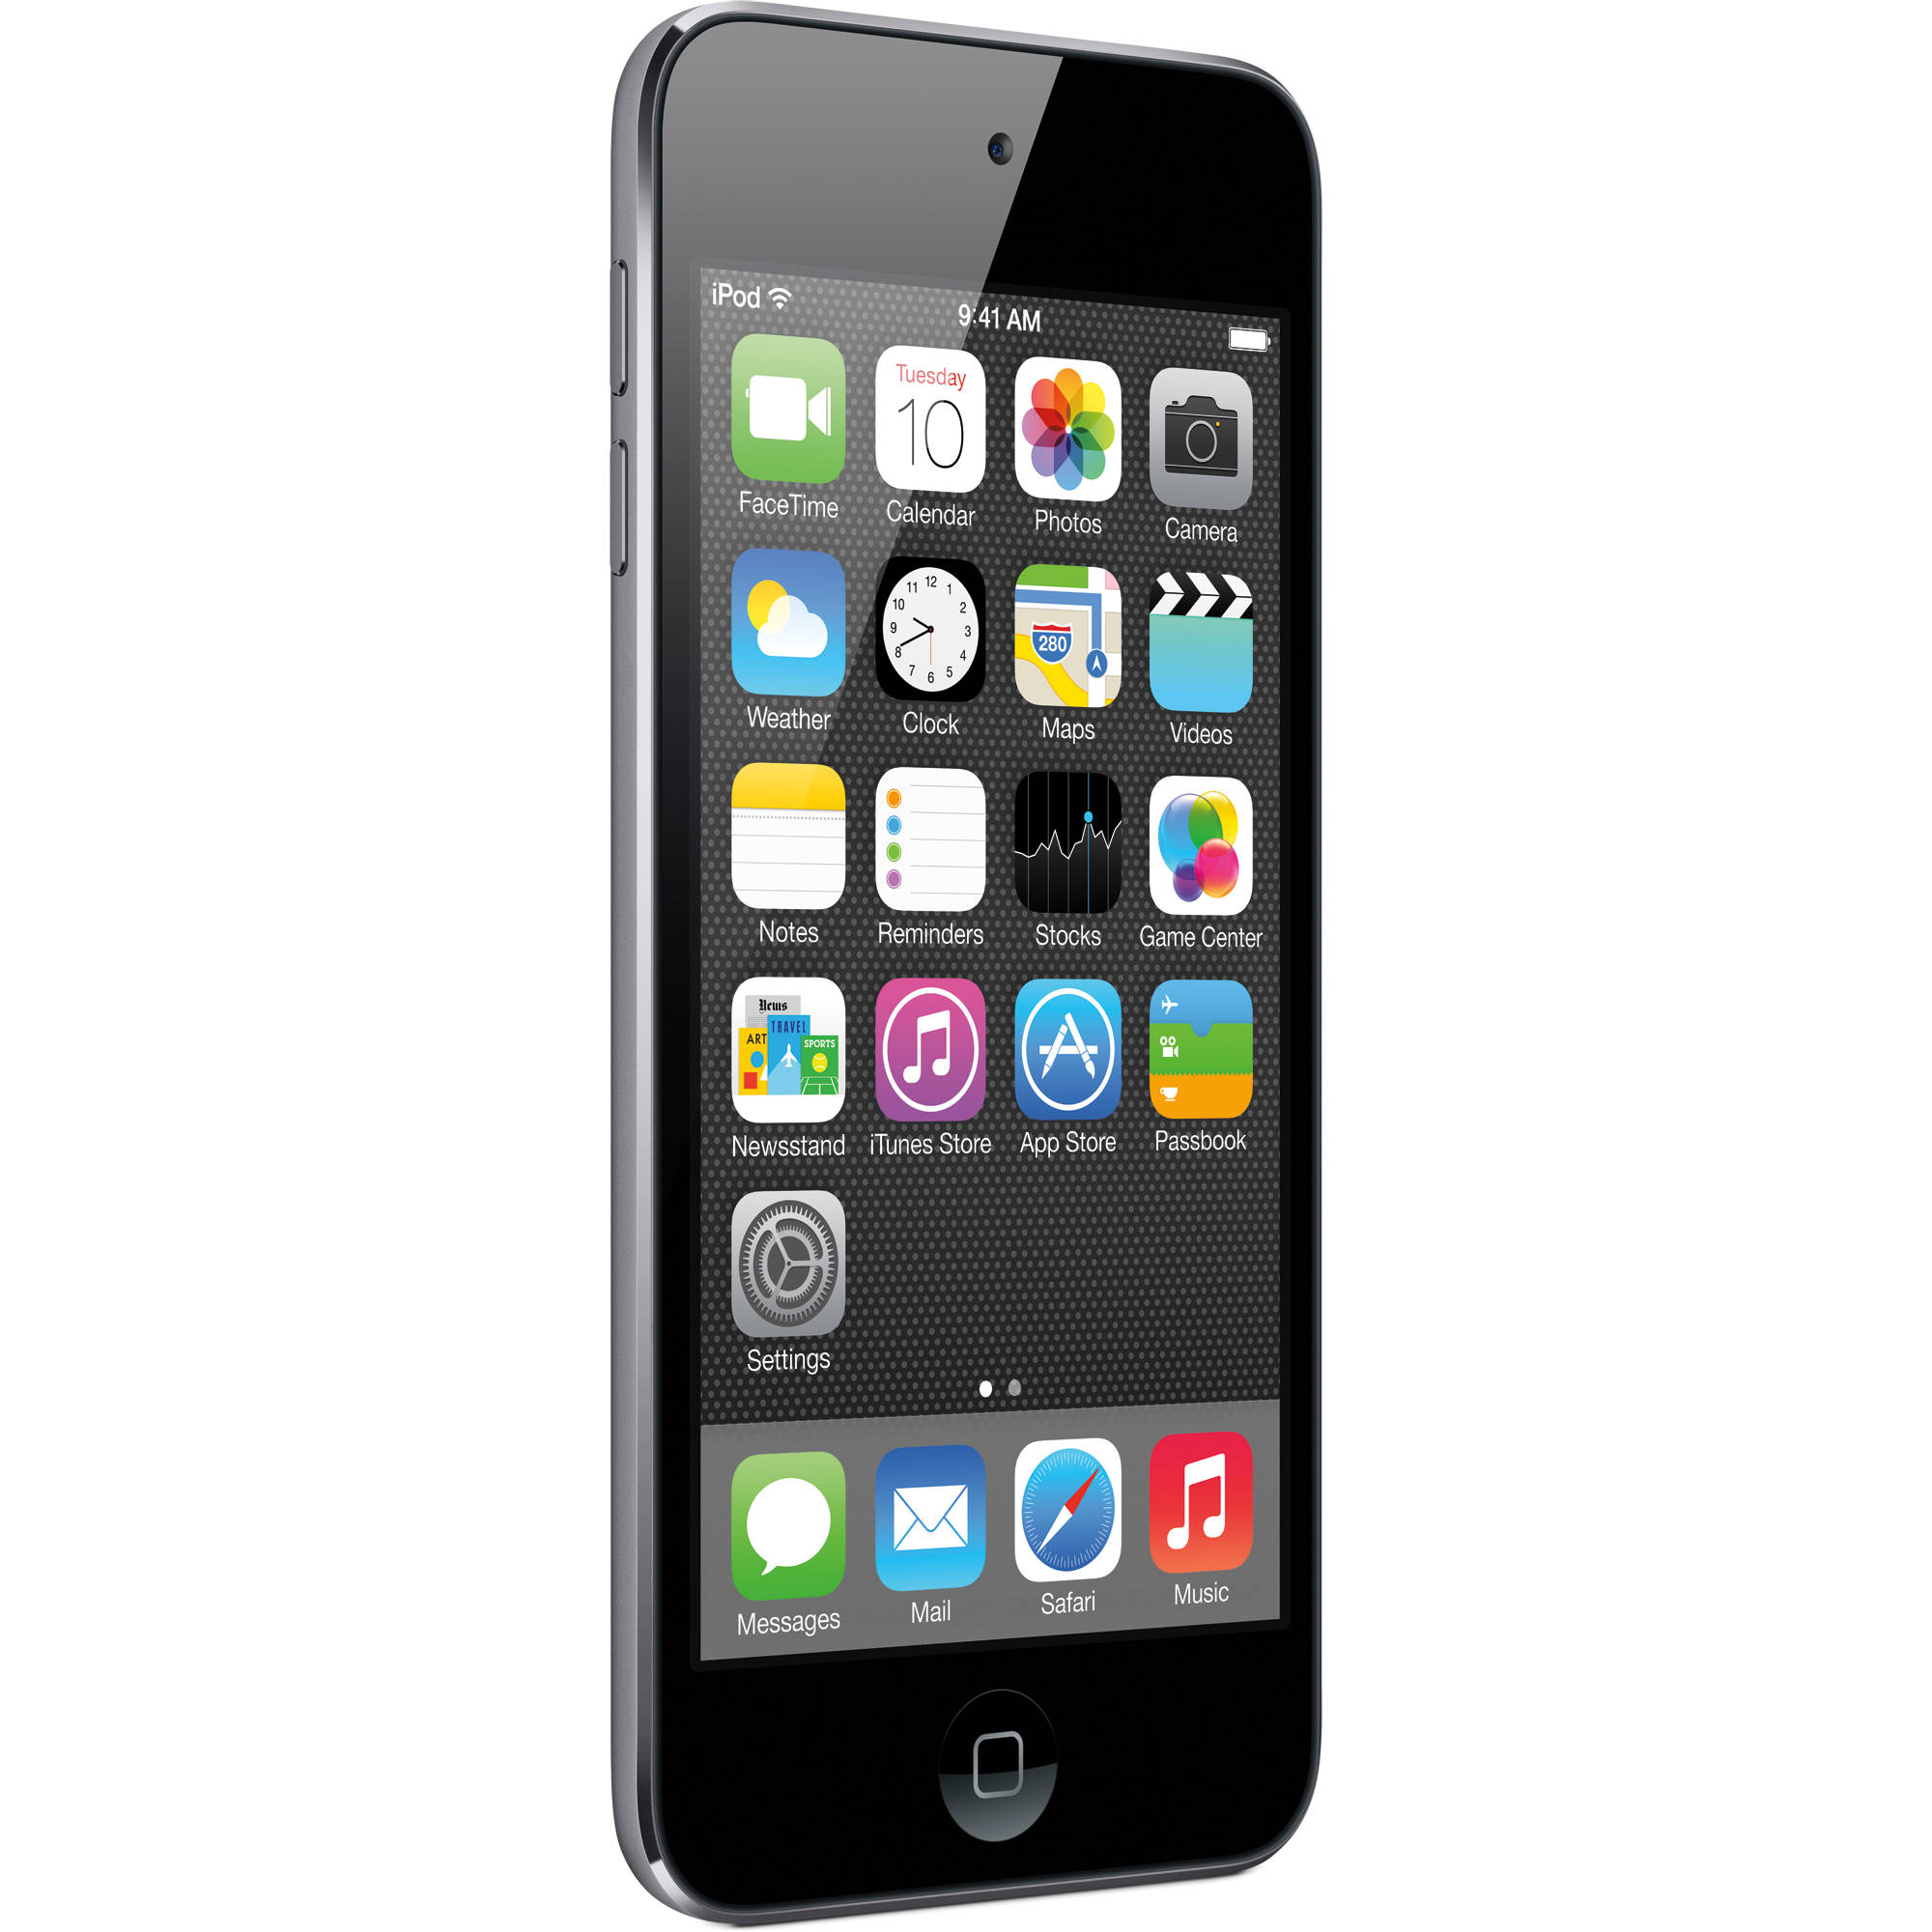 Refurbished Apple iPod Touch 5th Generation 16GB Space Gray MGG82LL/A